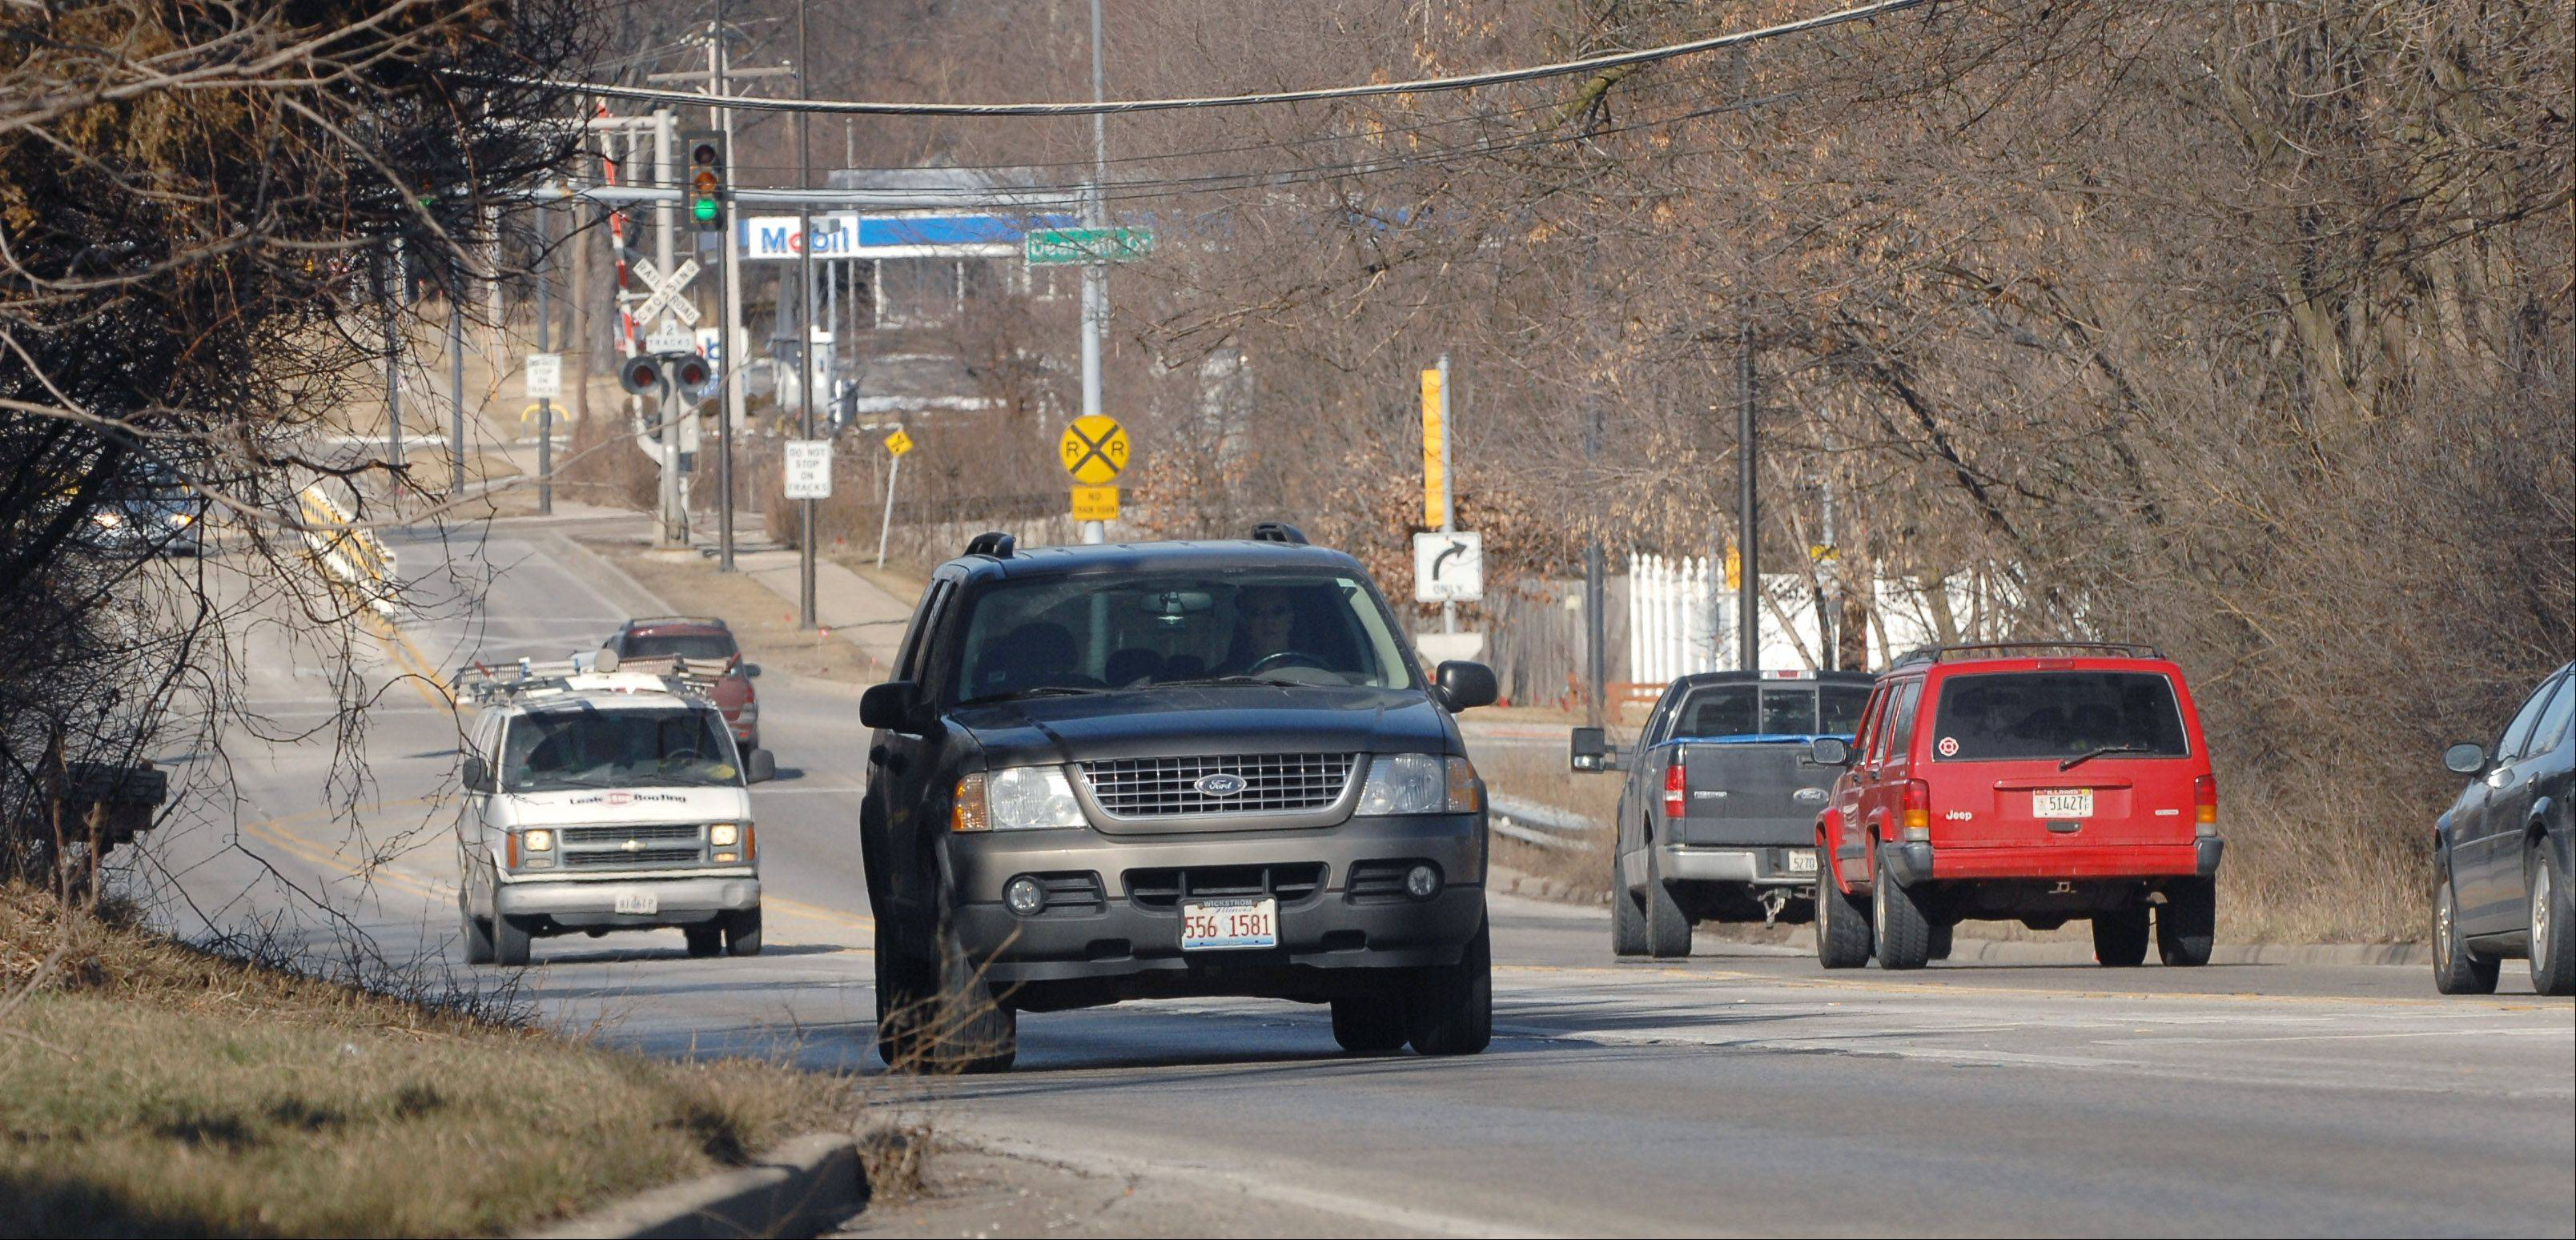 Starting Monday, Route 45 between Mundelein and Lincolnshire will be resurfaced. A $74 million project to widen that stretch is at least five years away and likely longer.